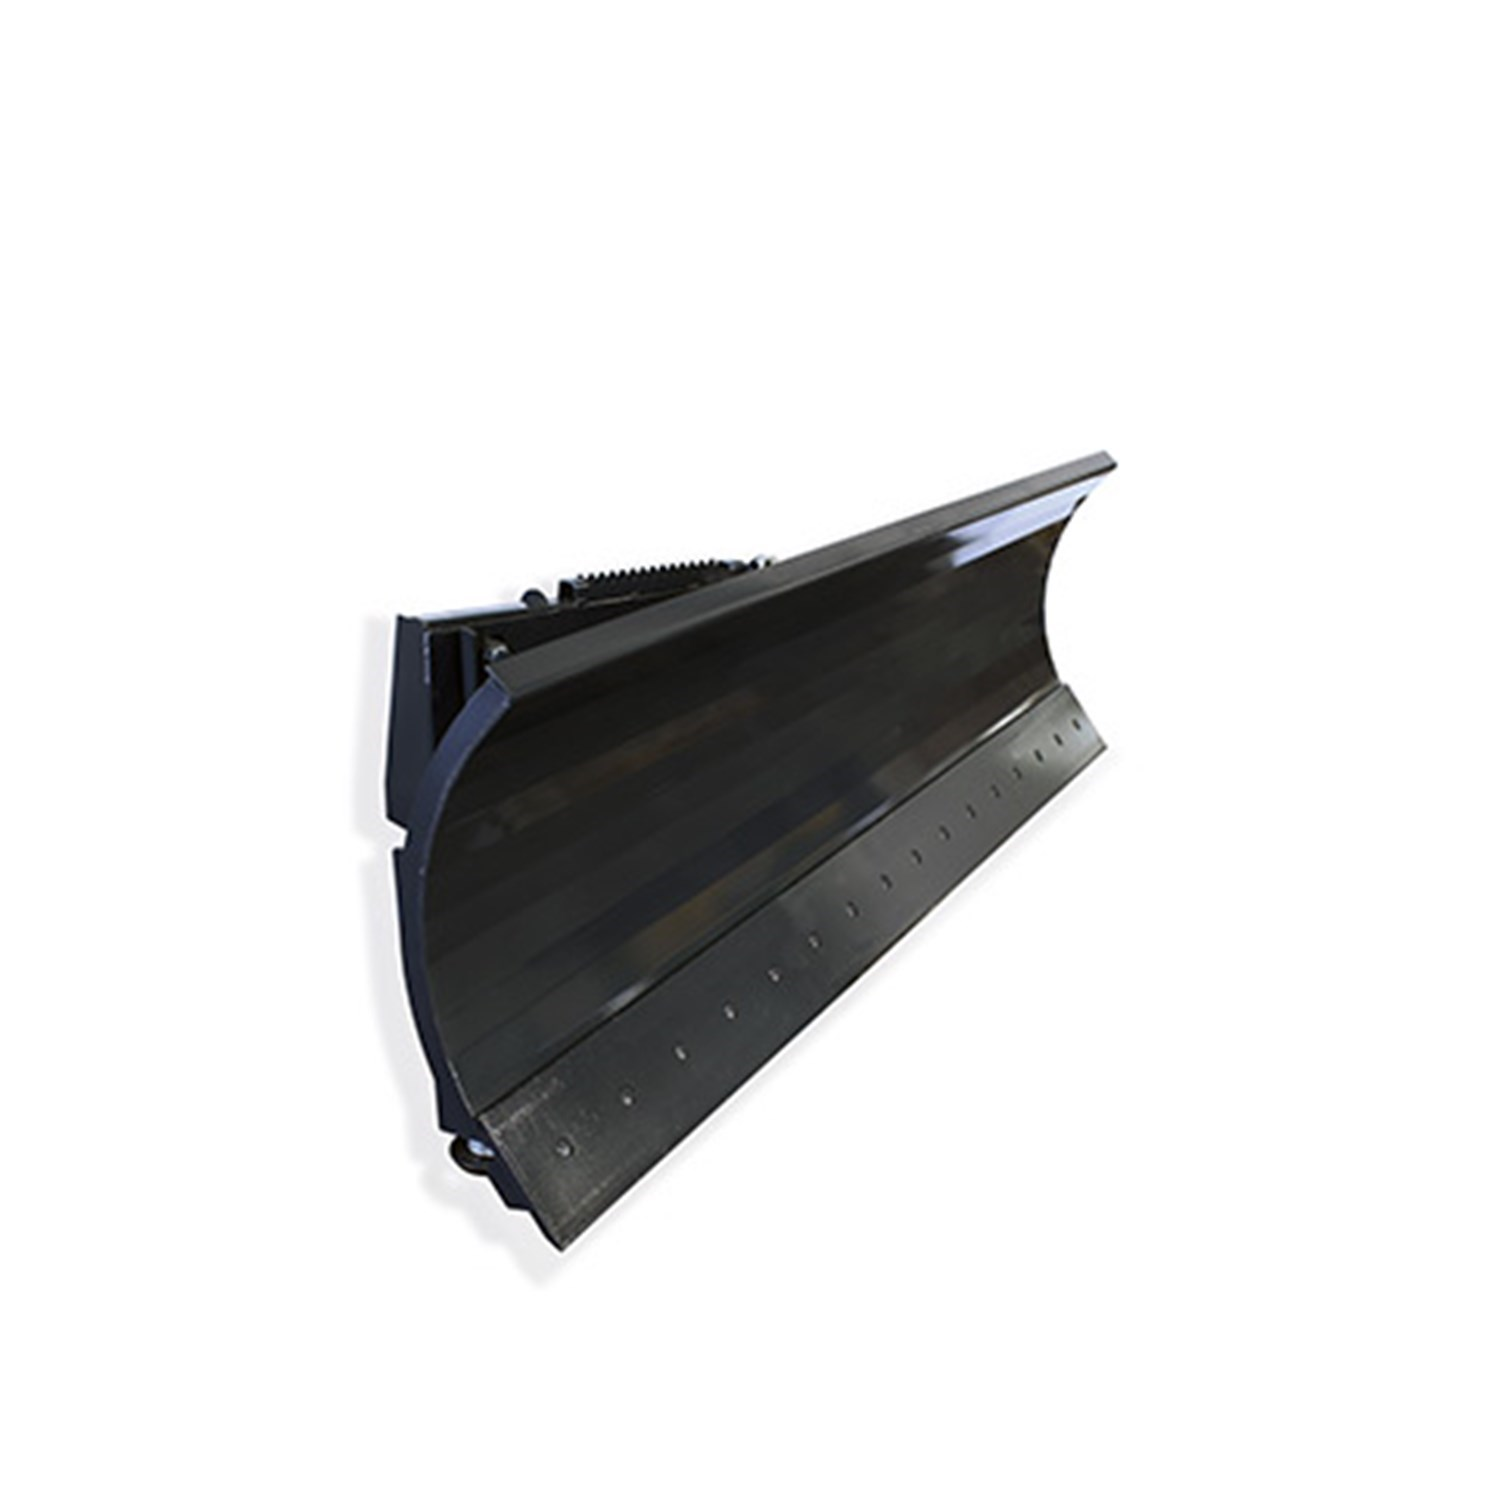 VIRNIG SBS LIGHT-DUTY ANGLE SNOW BLADE SERIES